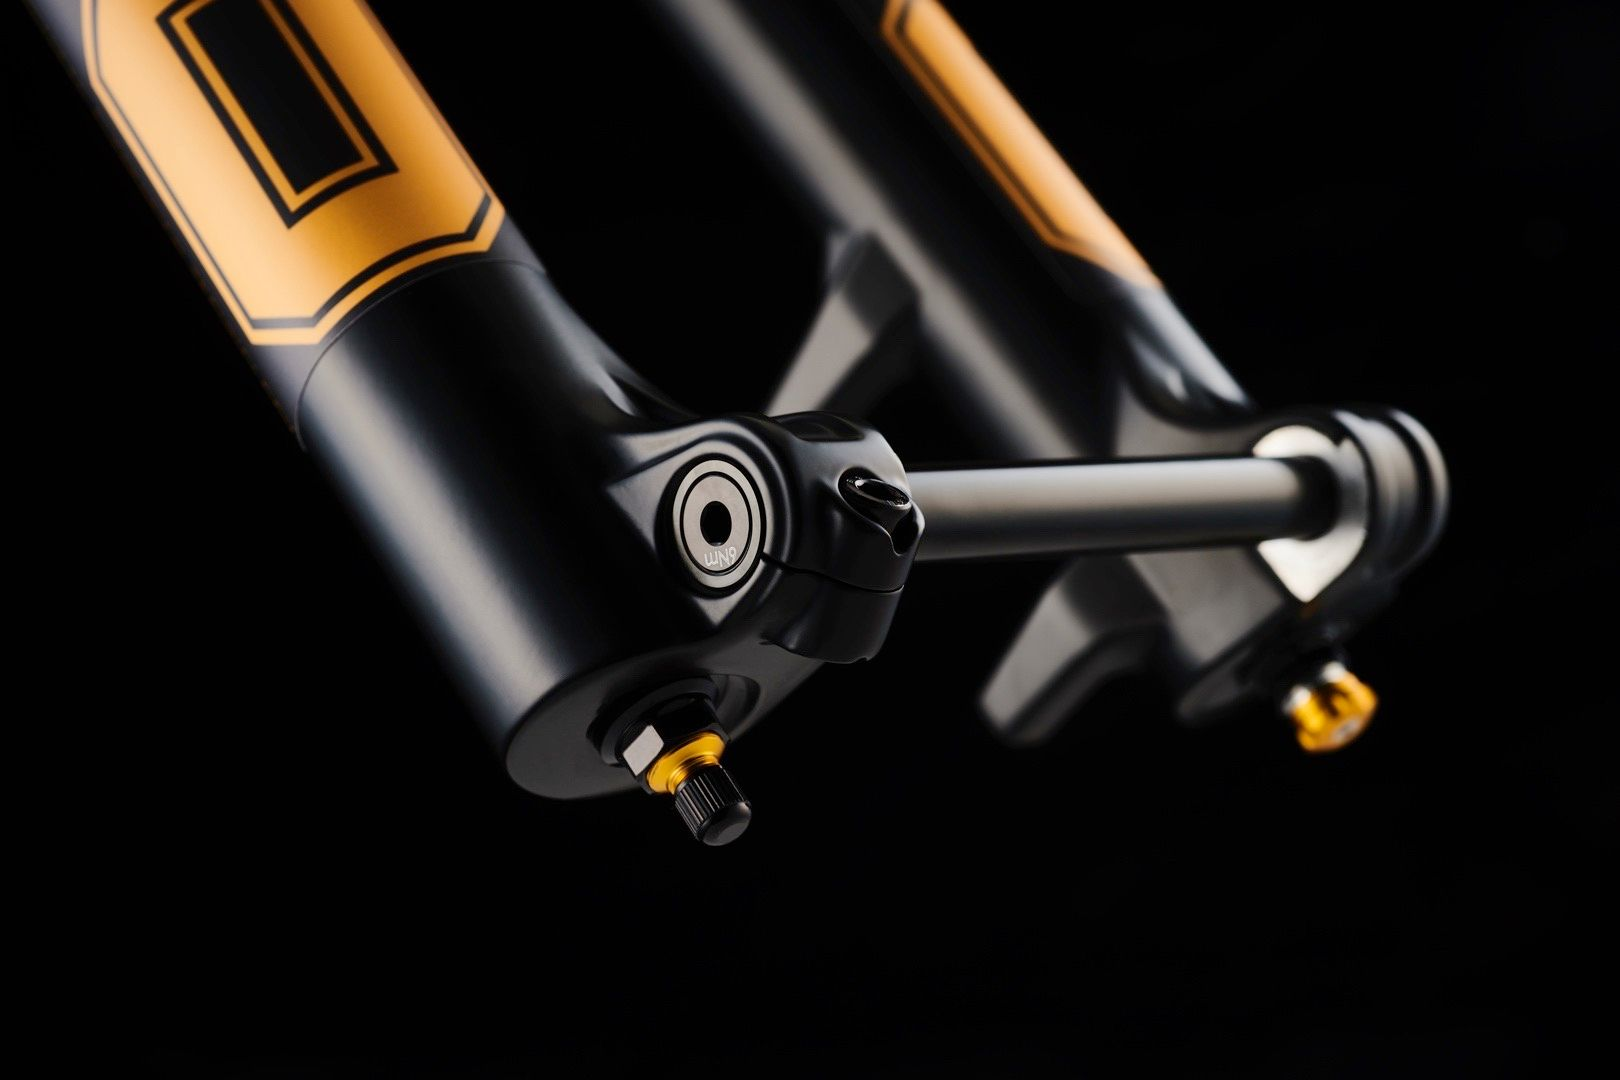 Öhlins brings 38mm stanchions and downhill performance to Enduro and eMTBs with the new RXF38 m.2